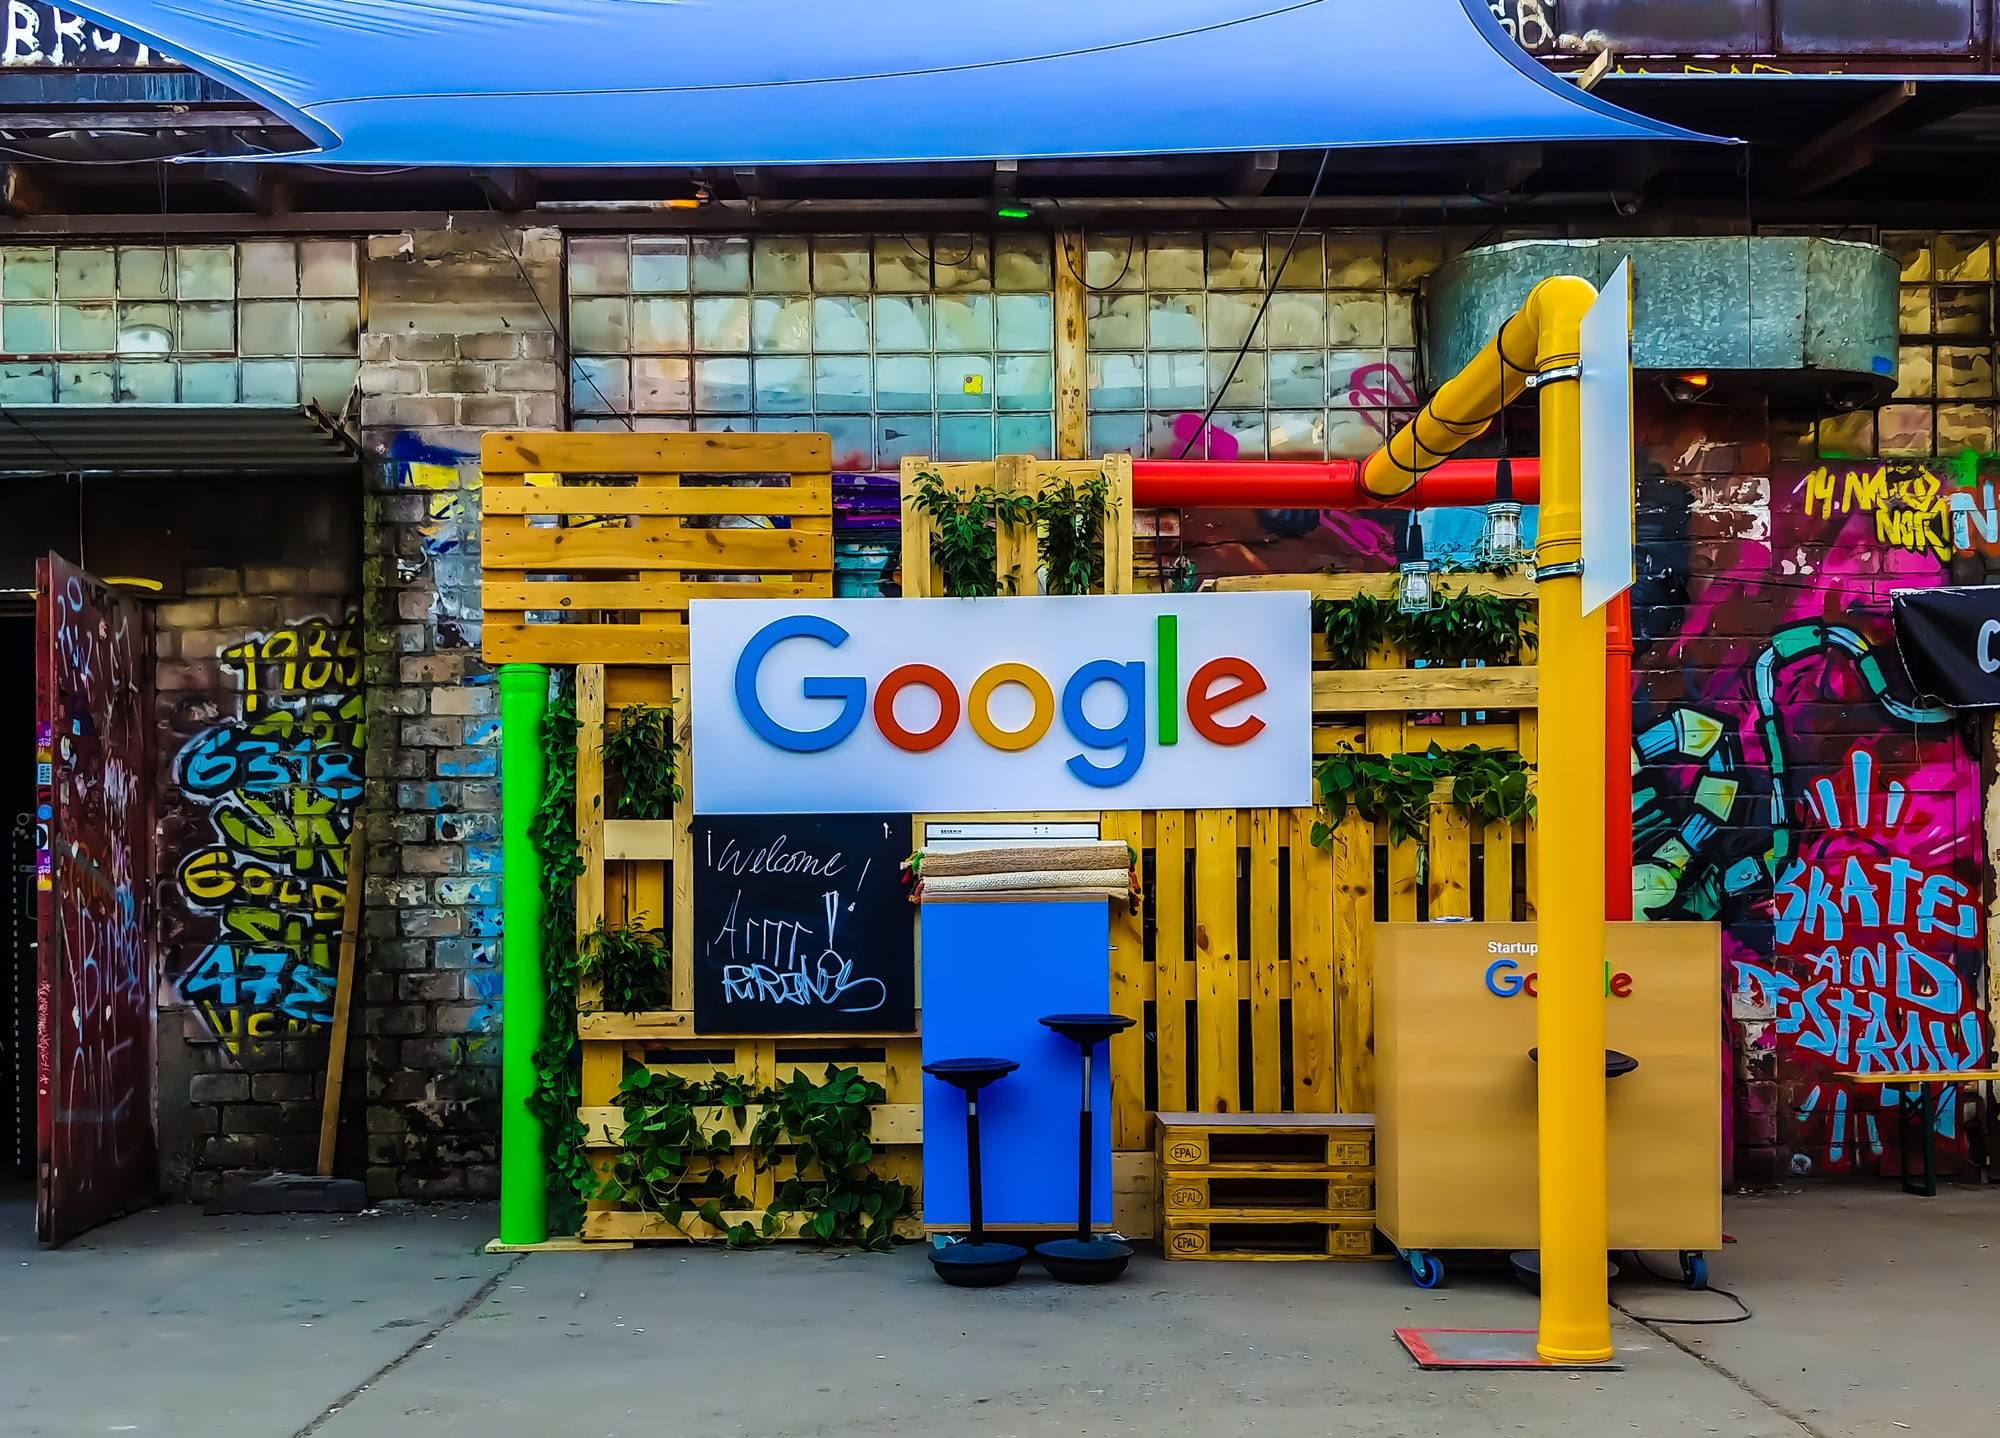 Google stall at an event in Germany 🇩🇪.